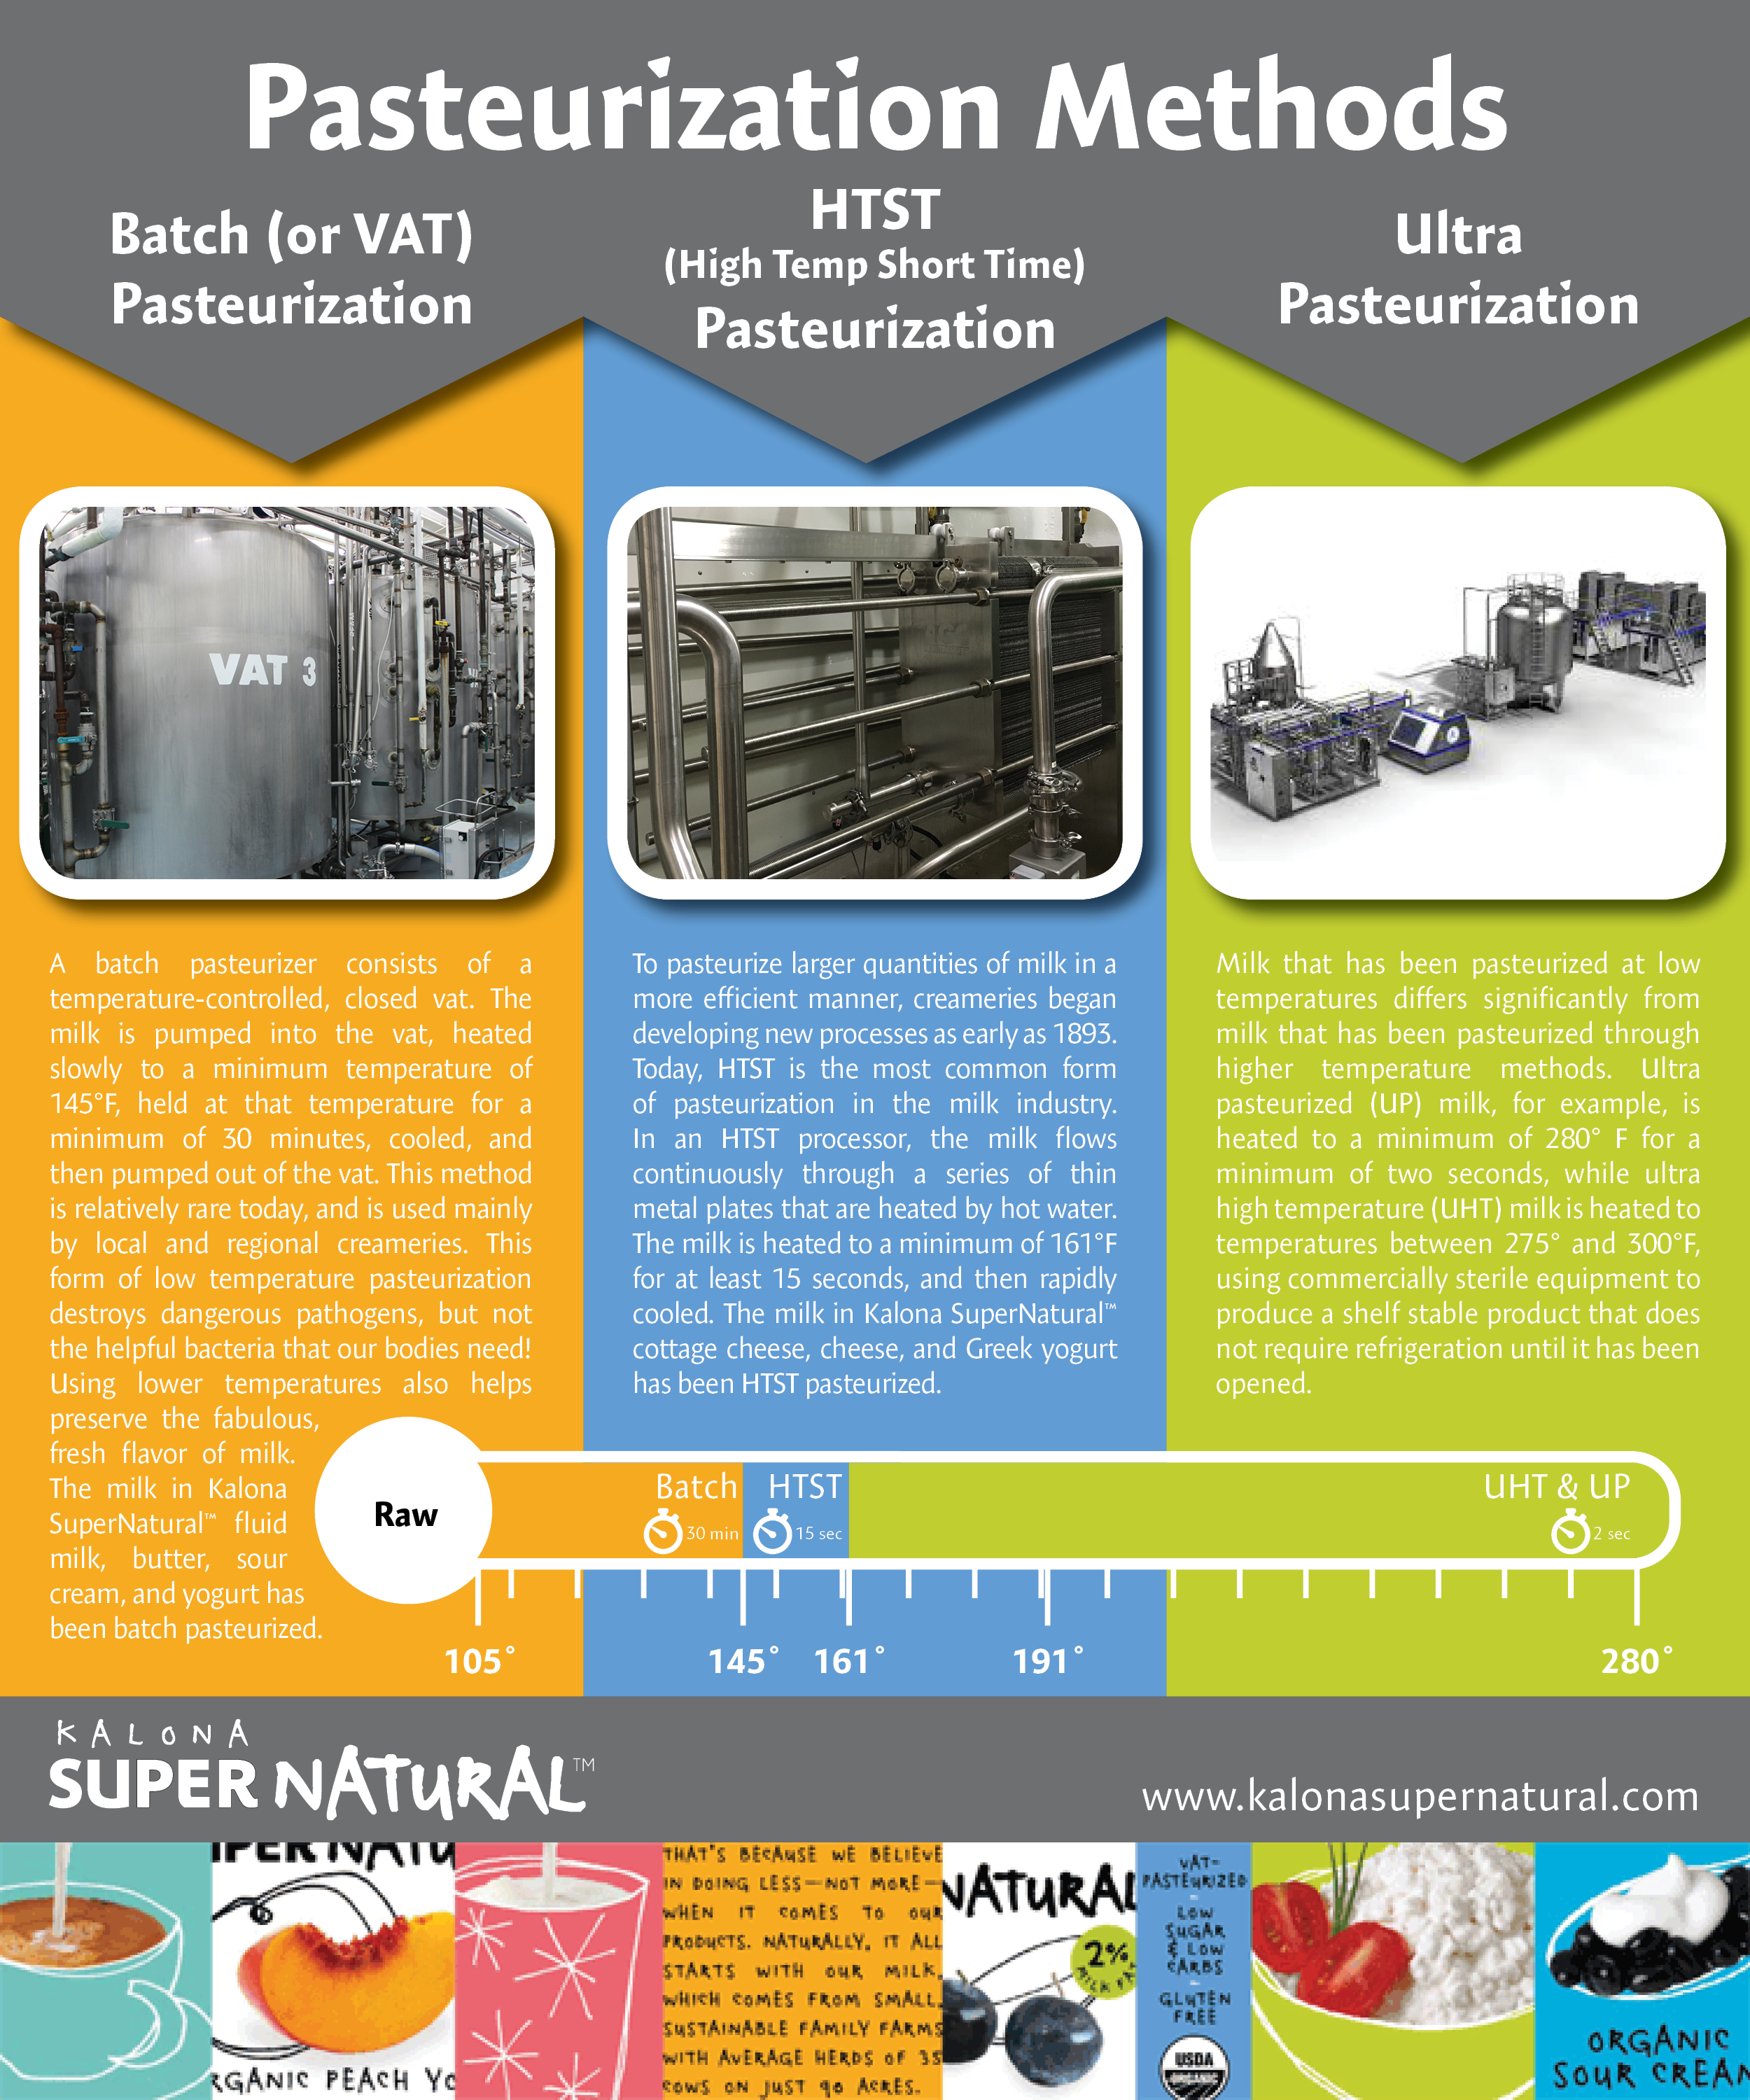 How does Pasteurization work today?